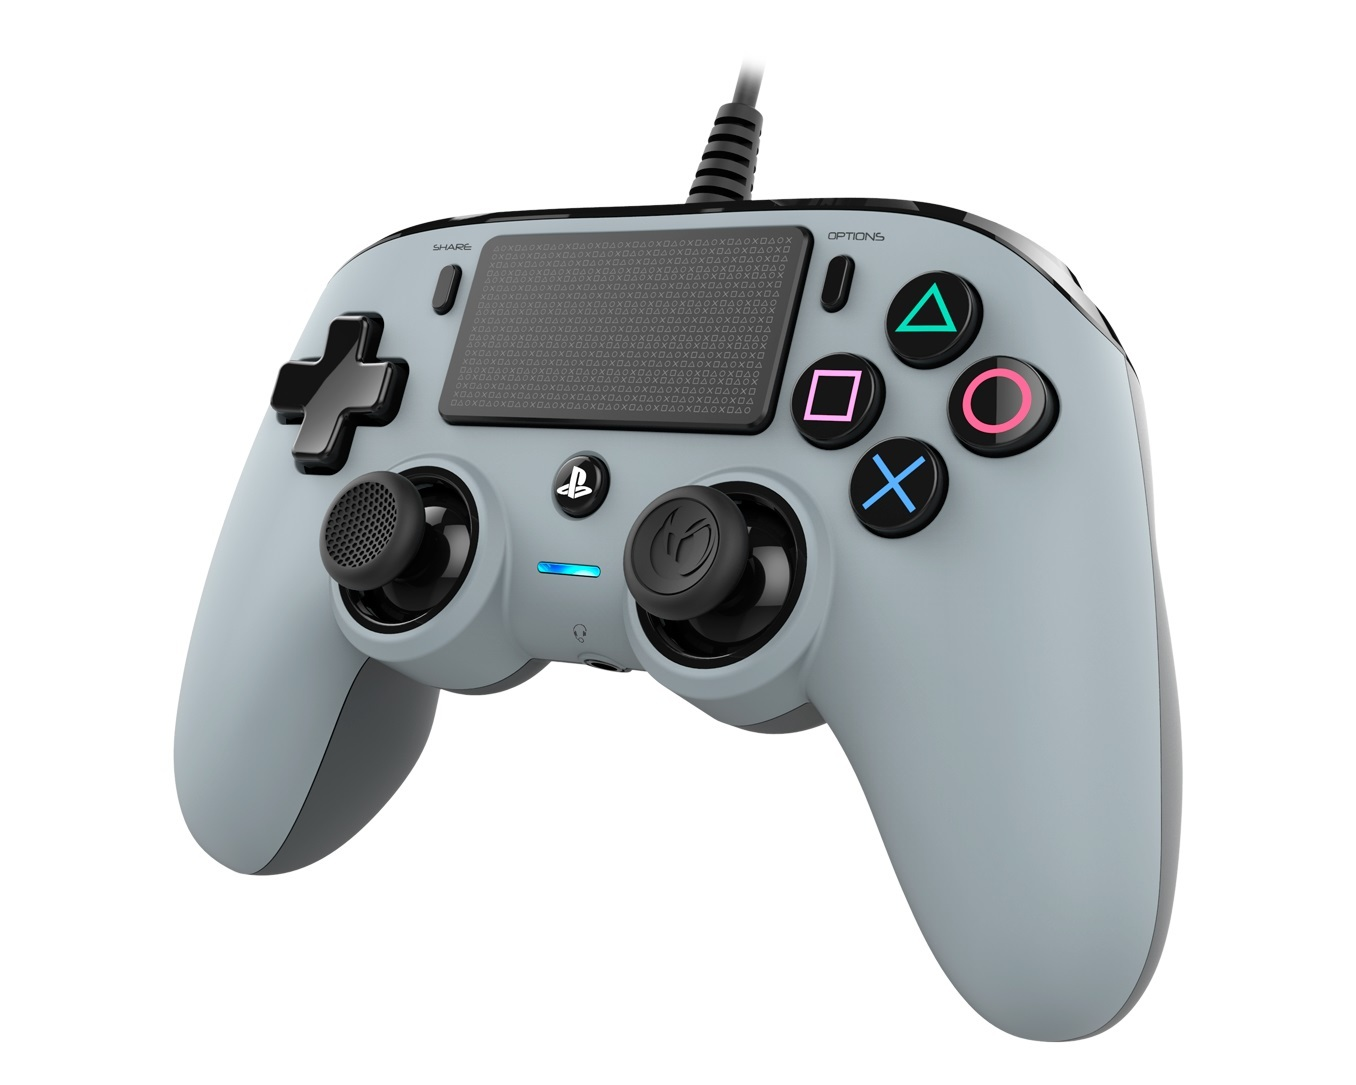 Nacon PS4 Wired Gaming Controller - Grey for PS4 image